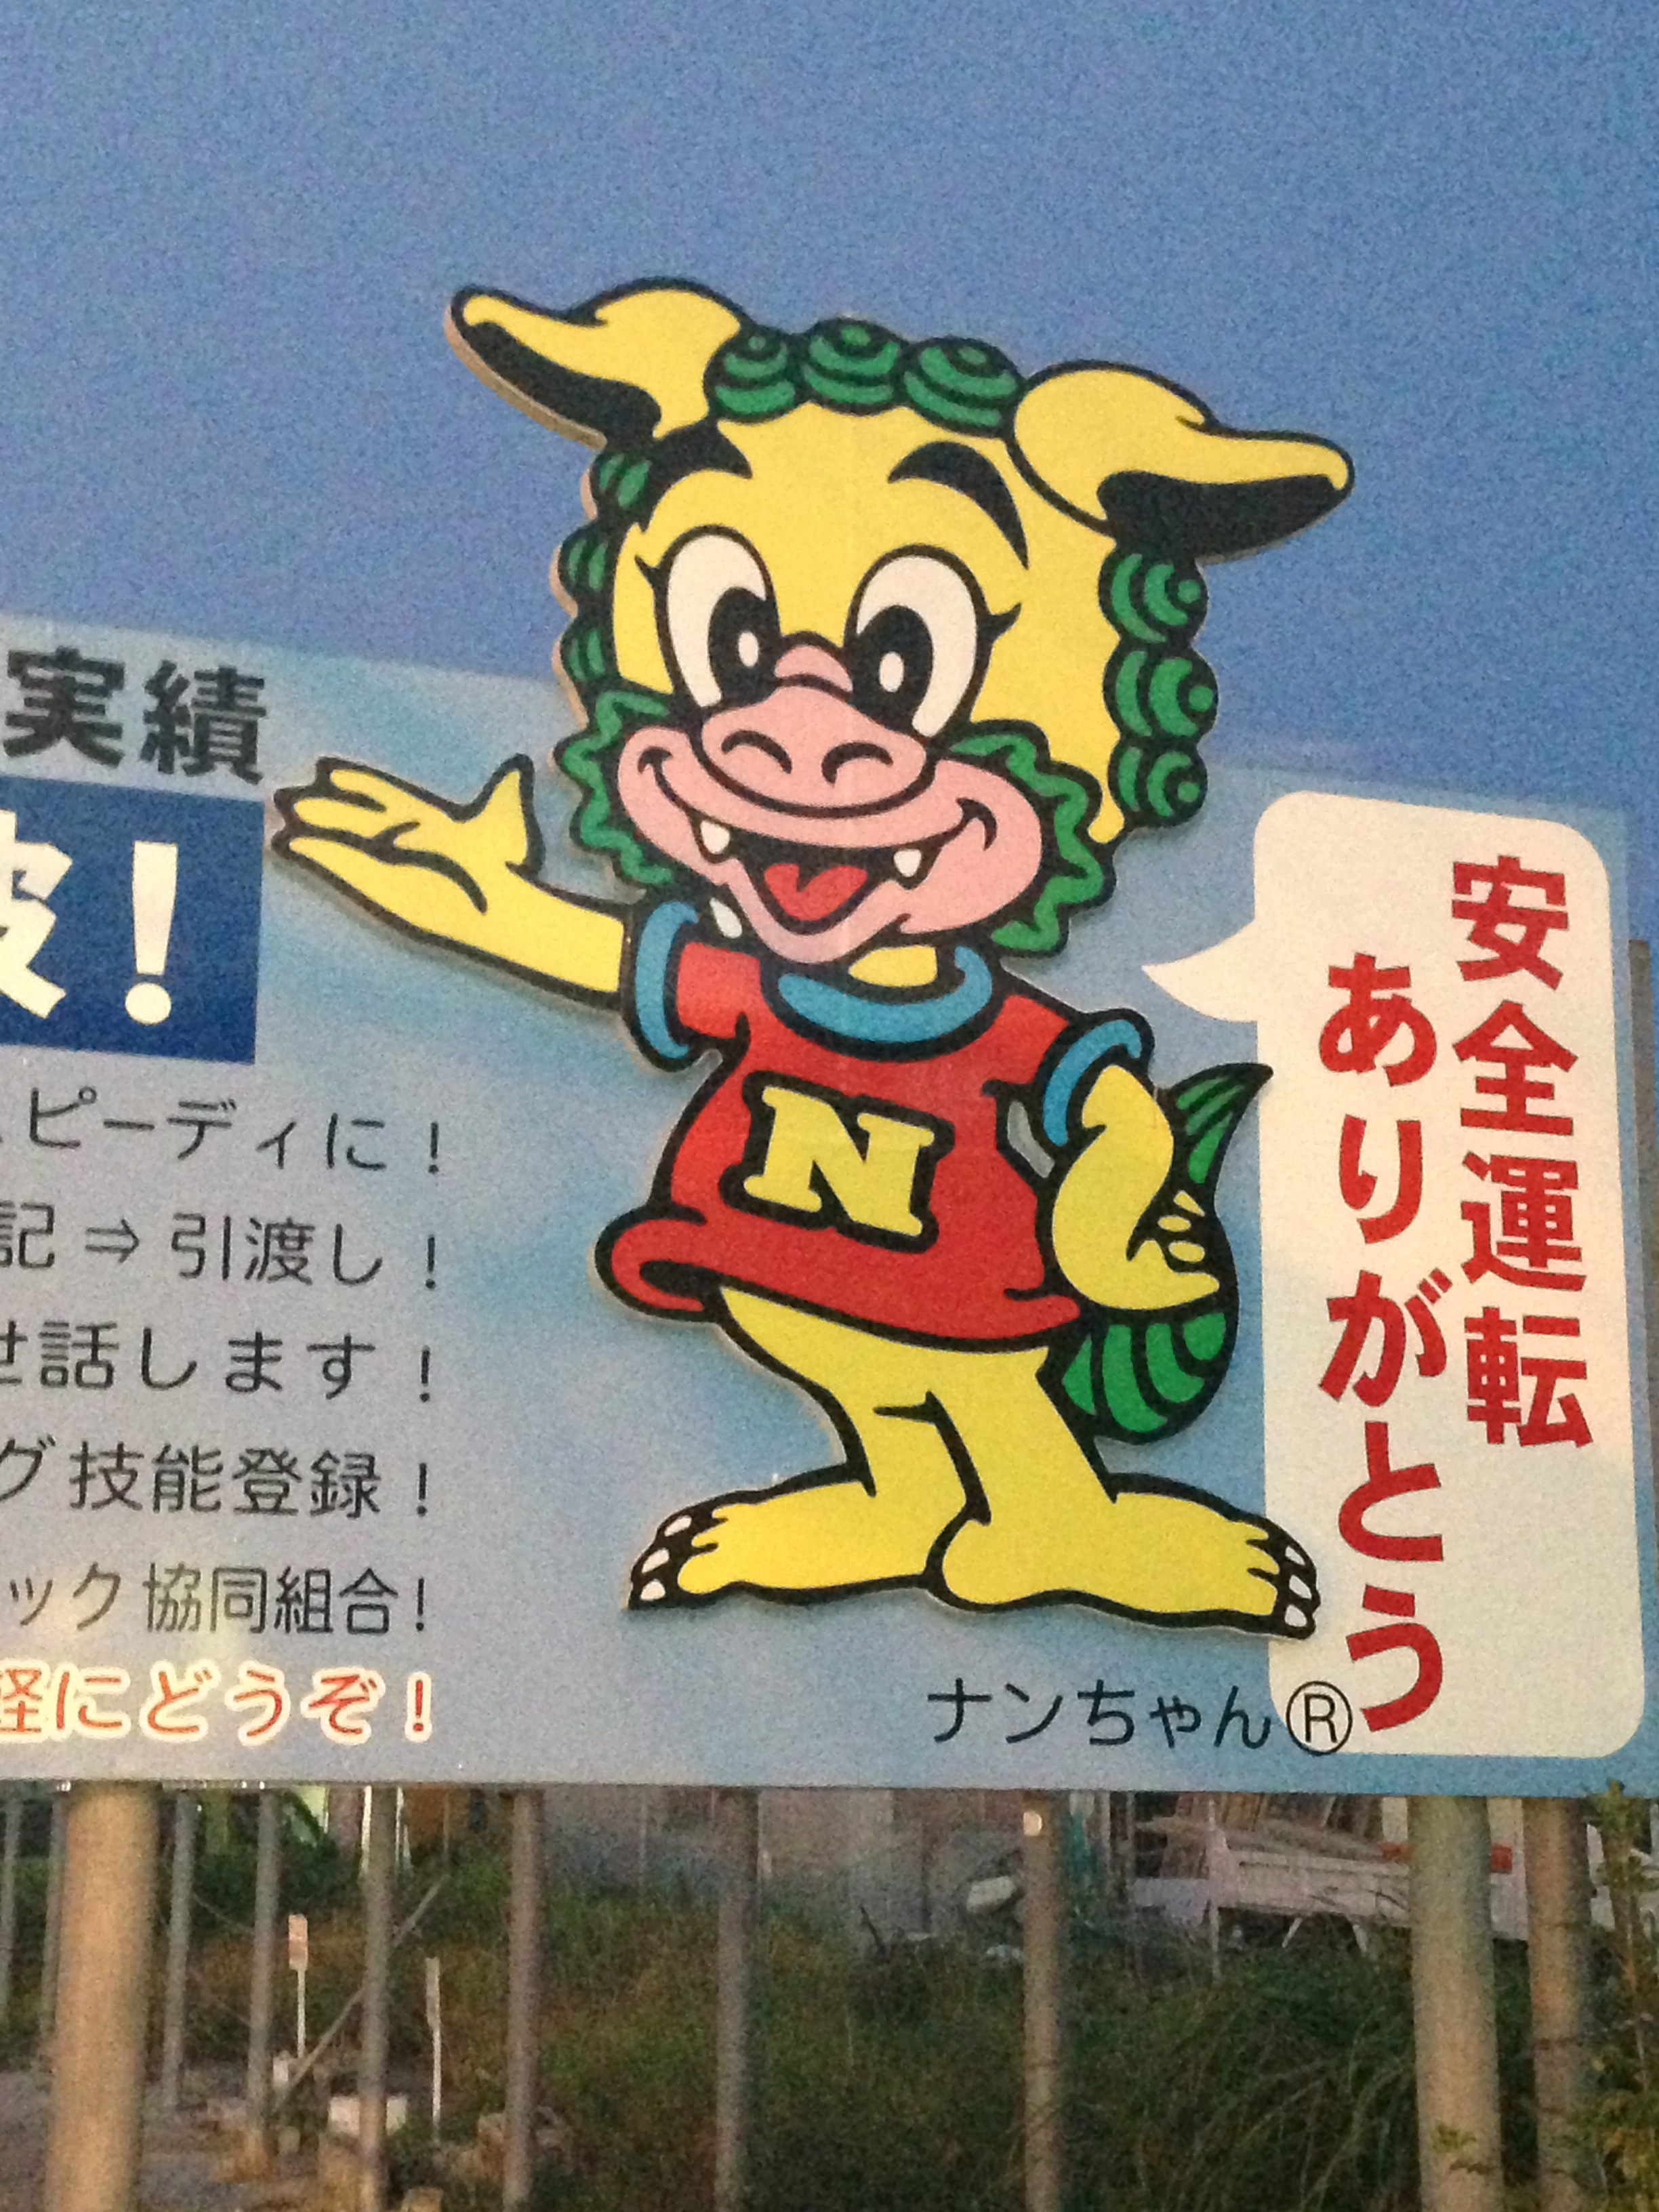 This is the adorable mascot of a group of apartments in the Haebaru/Yonabaru area, one of which Eric and I live in. He's a shiisa, a mythical creature that looks like a dog but is actually a lion. You see him a lot in Chinese art, and versions of him are on just about every building here in Okinawa!